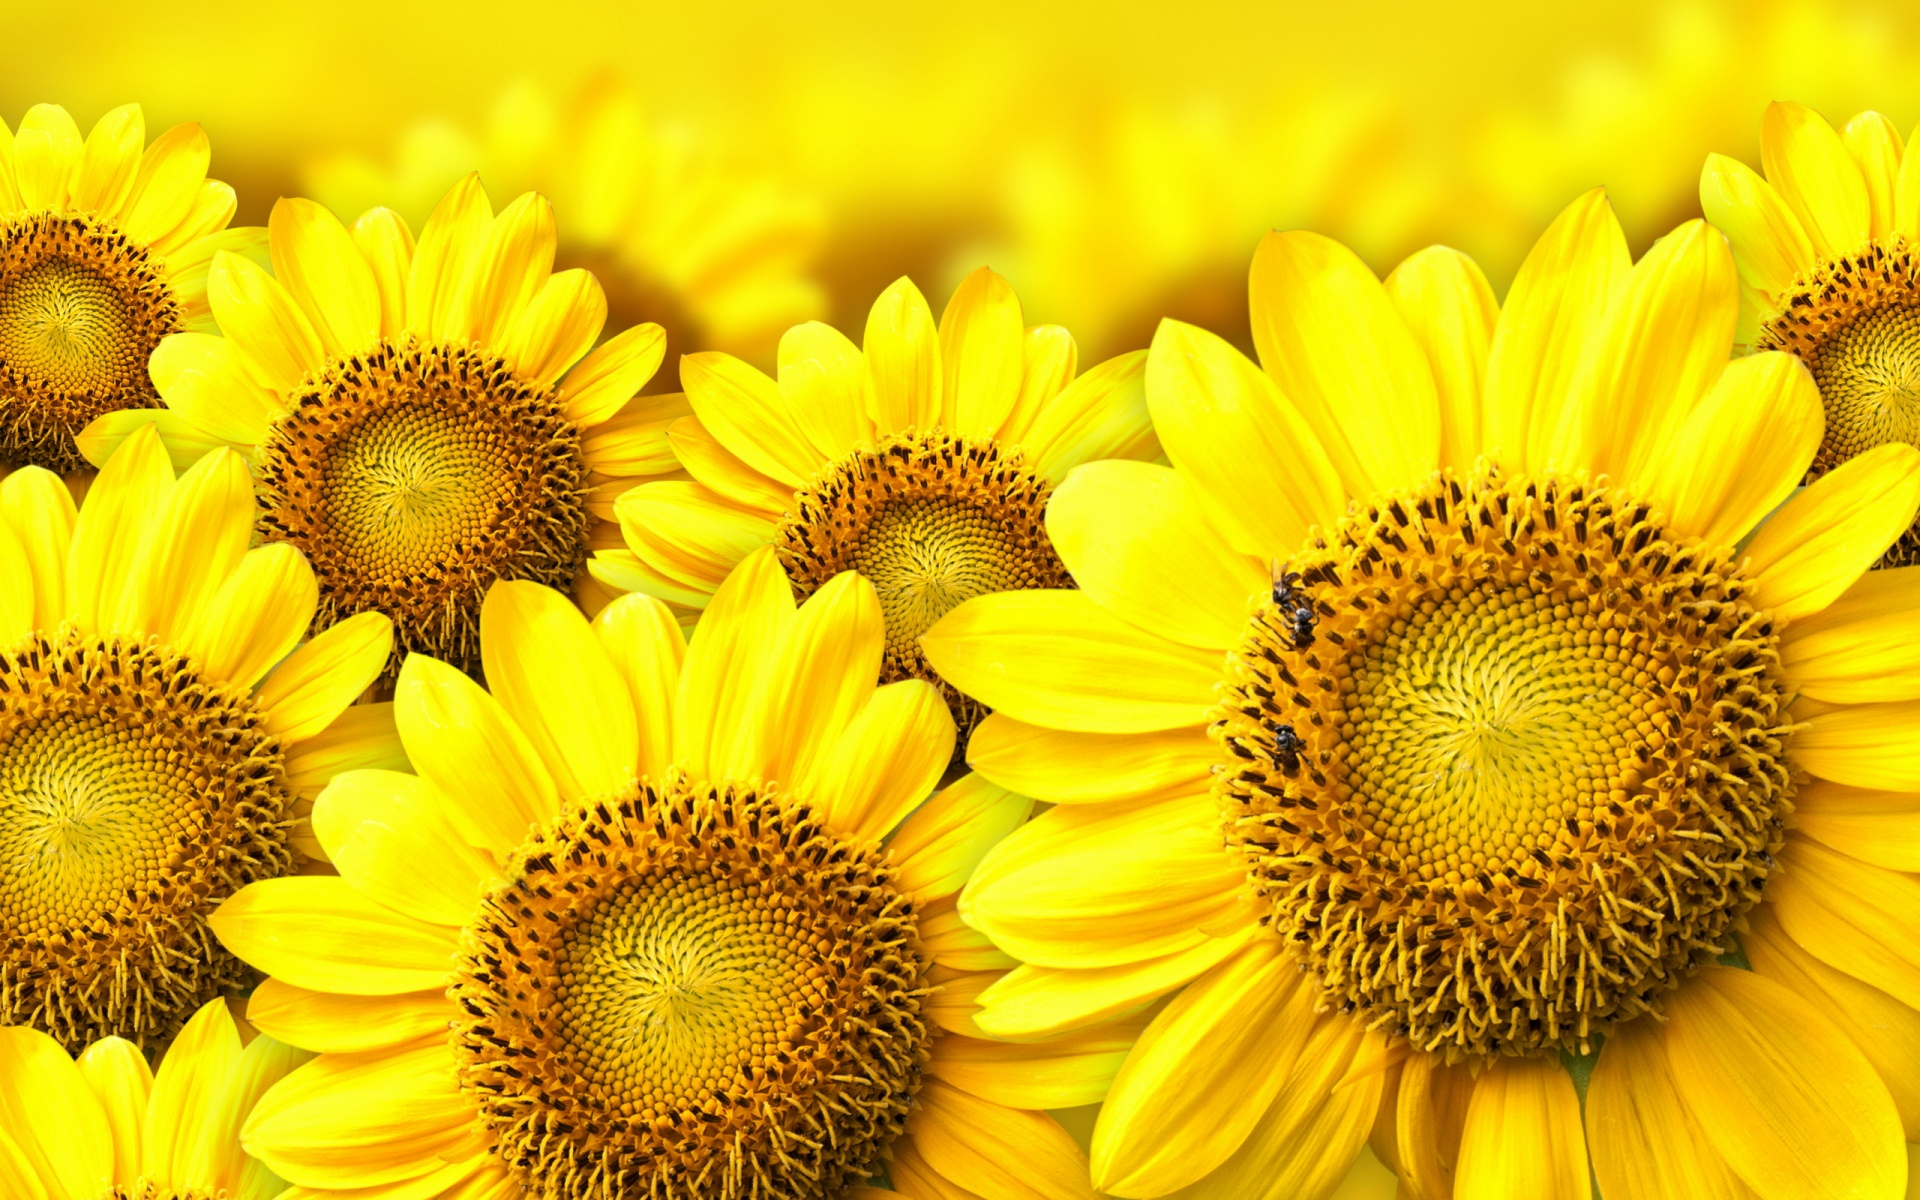 Yellow Sunflow HD Wallpaper, Background Images